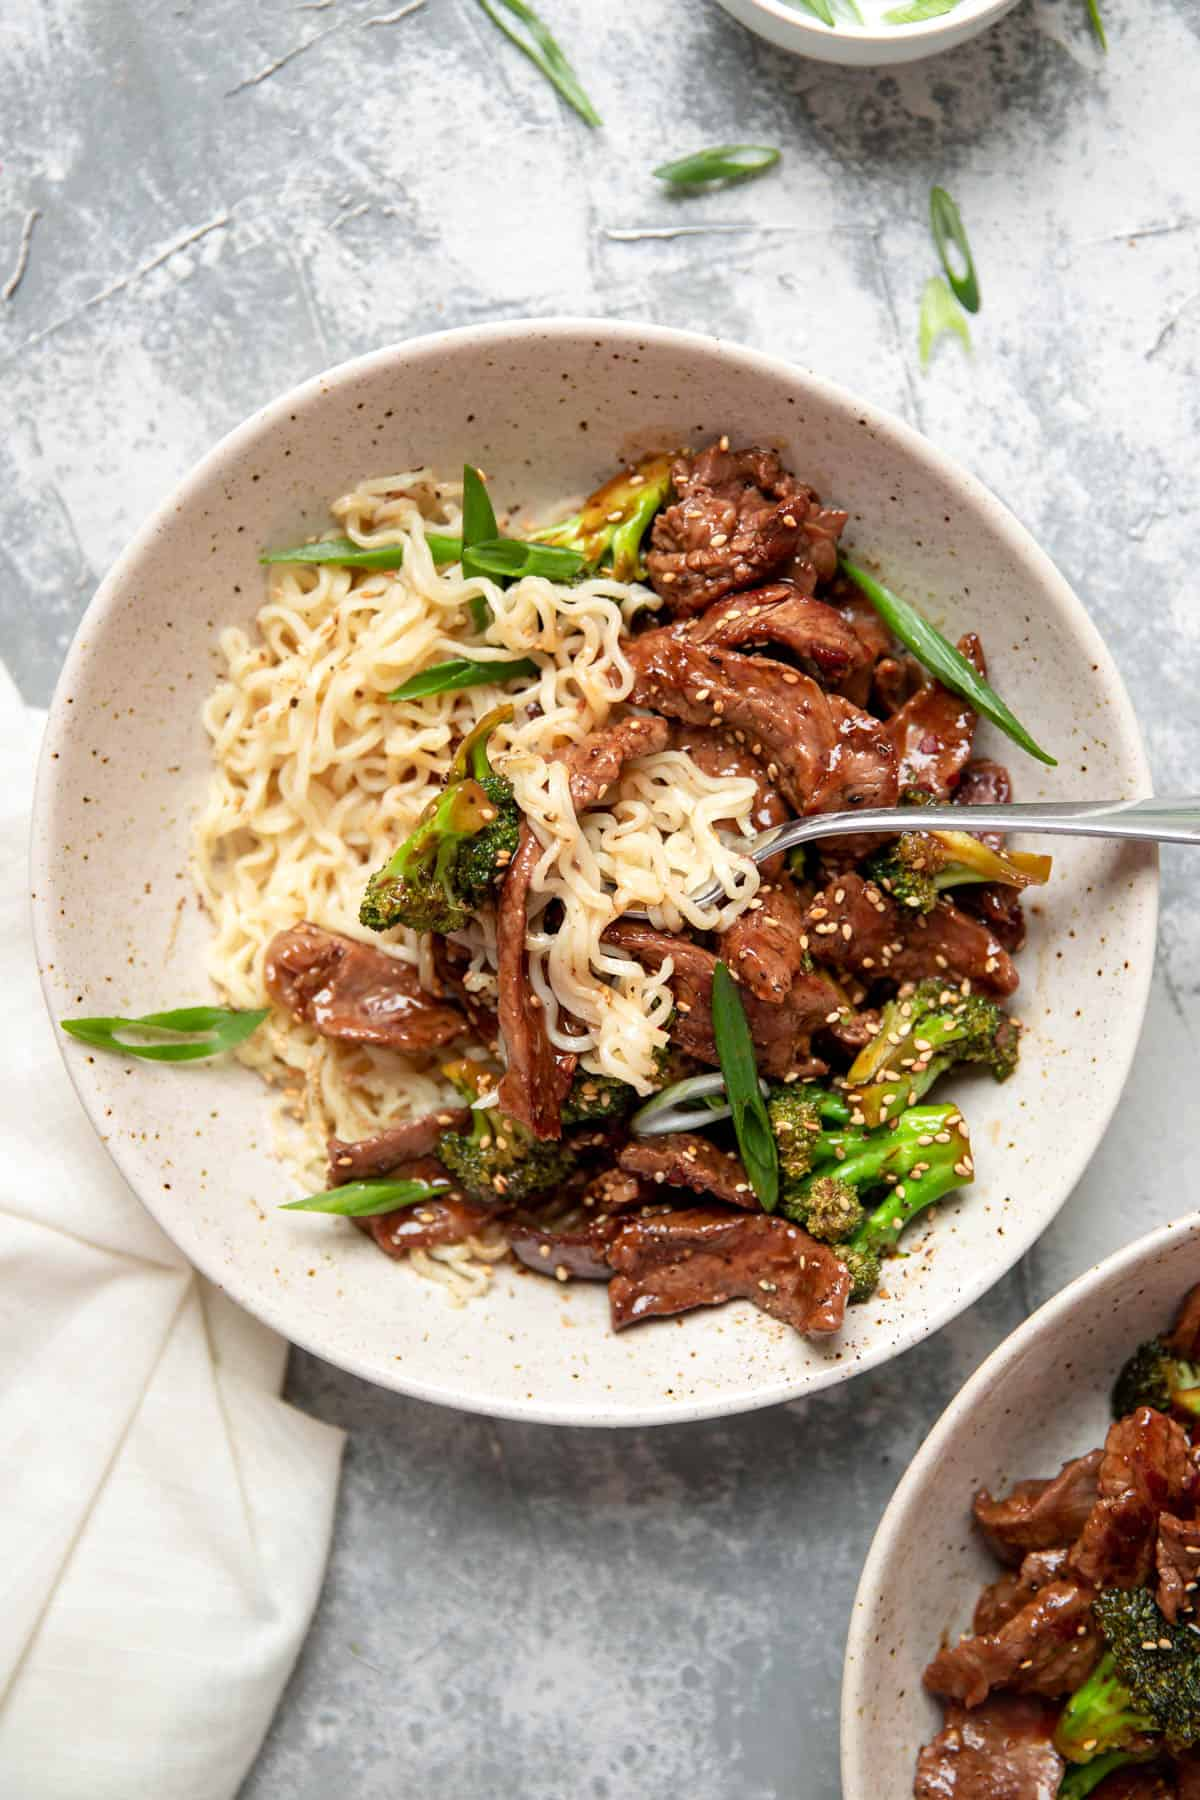 beef and broccoli with ramen noodles in a bowl.